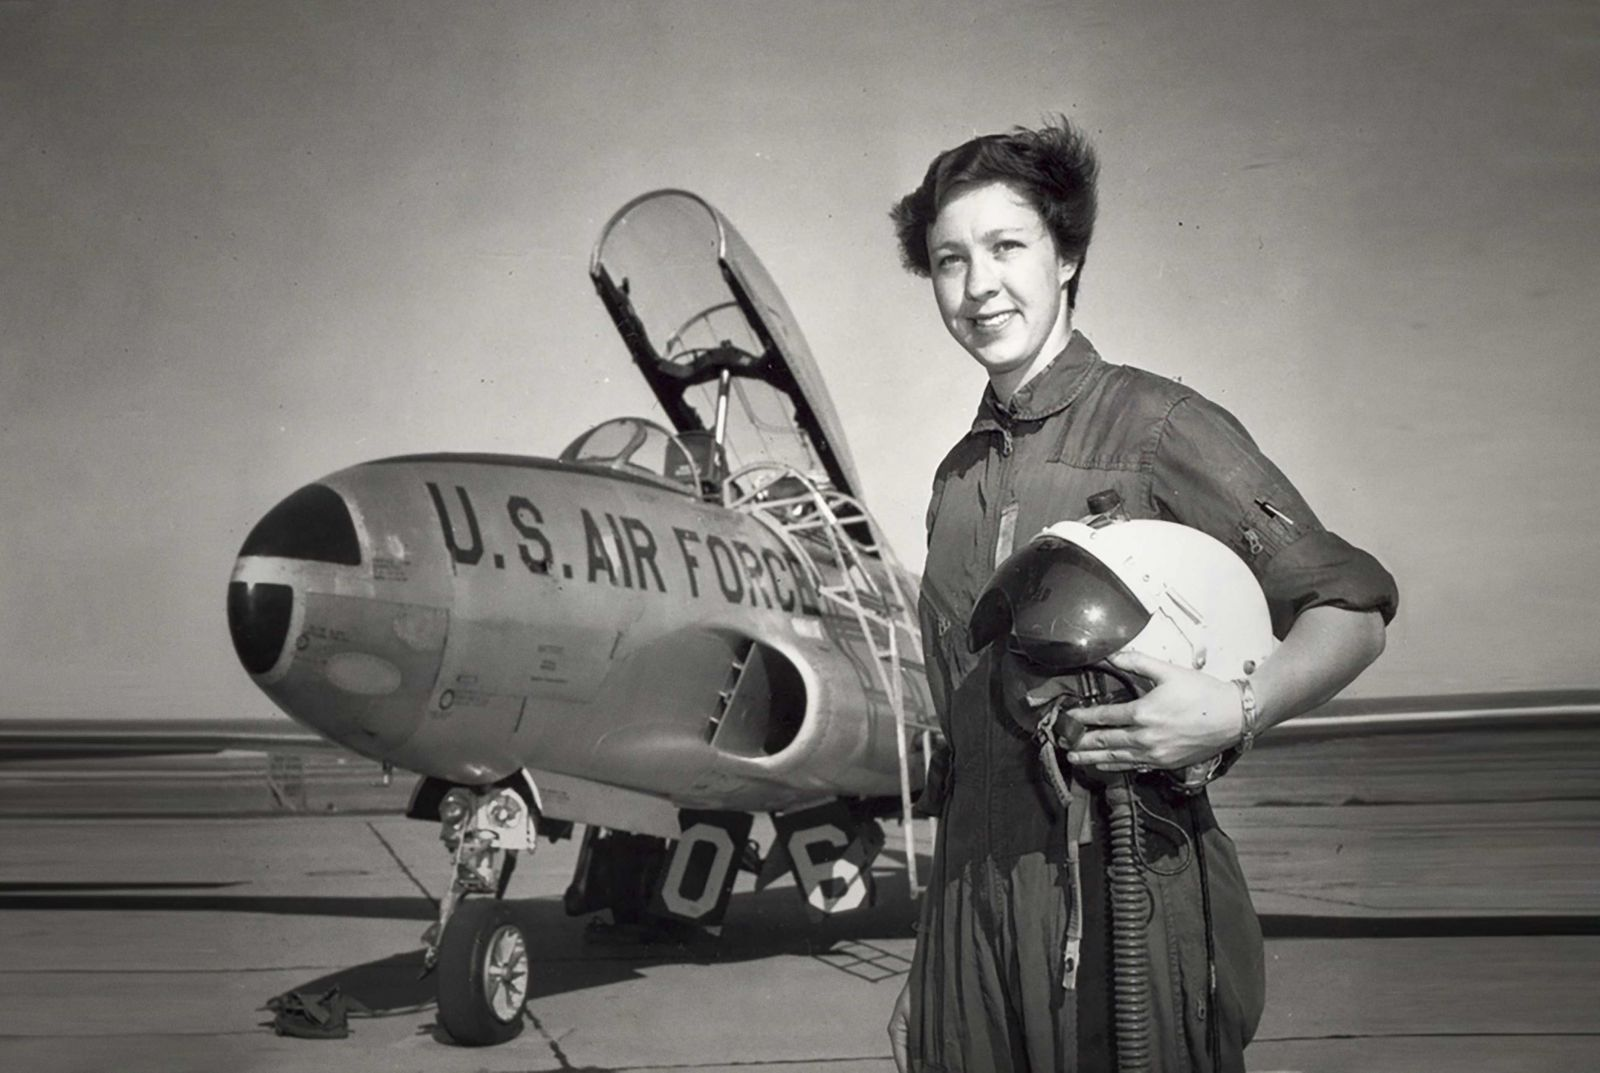 Wally Funk went through many of the same screening tests that the original Mercury astronauts underwent. However, she never got a chance to fly into space. Now the 82-year-old pilot will be joining Jeff Bezos on the first crewed suborbital spaceflight of Blue Origin's New Shepard rocket as early as July 20, 2021. Credit: Blue Origin